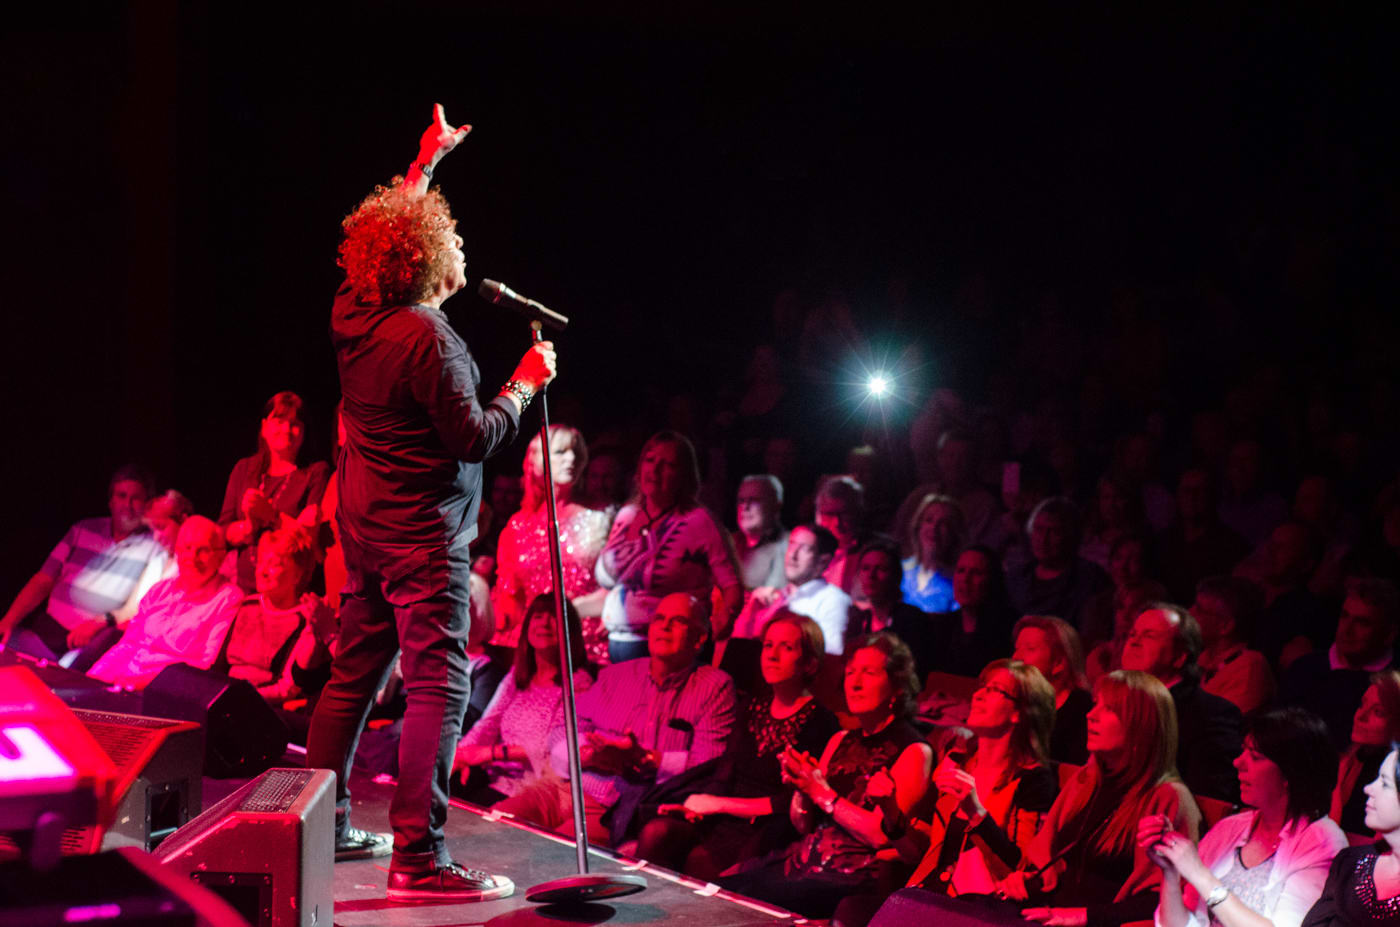 Leo Sayer at Bord Gais Energy Theatre by Sean Smyth (16-10-15) (98 of 129)